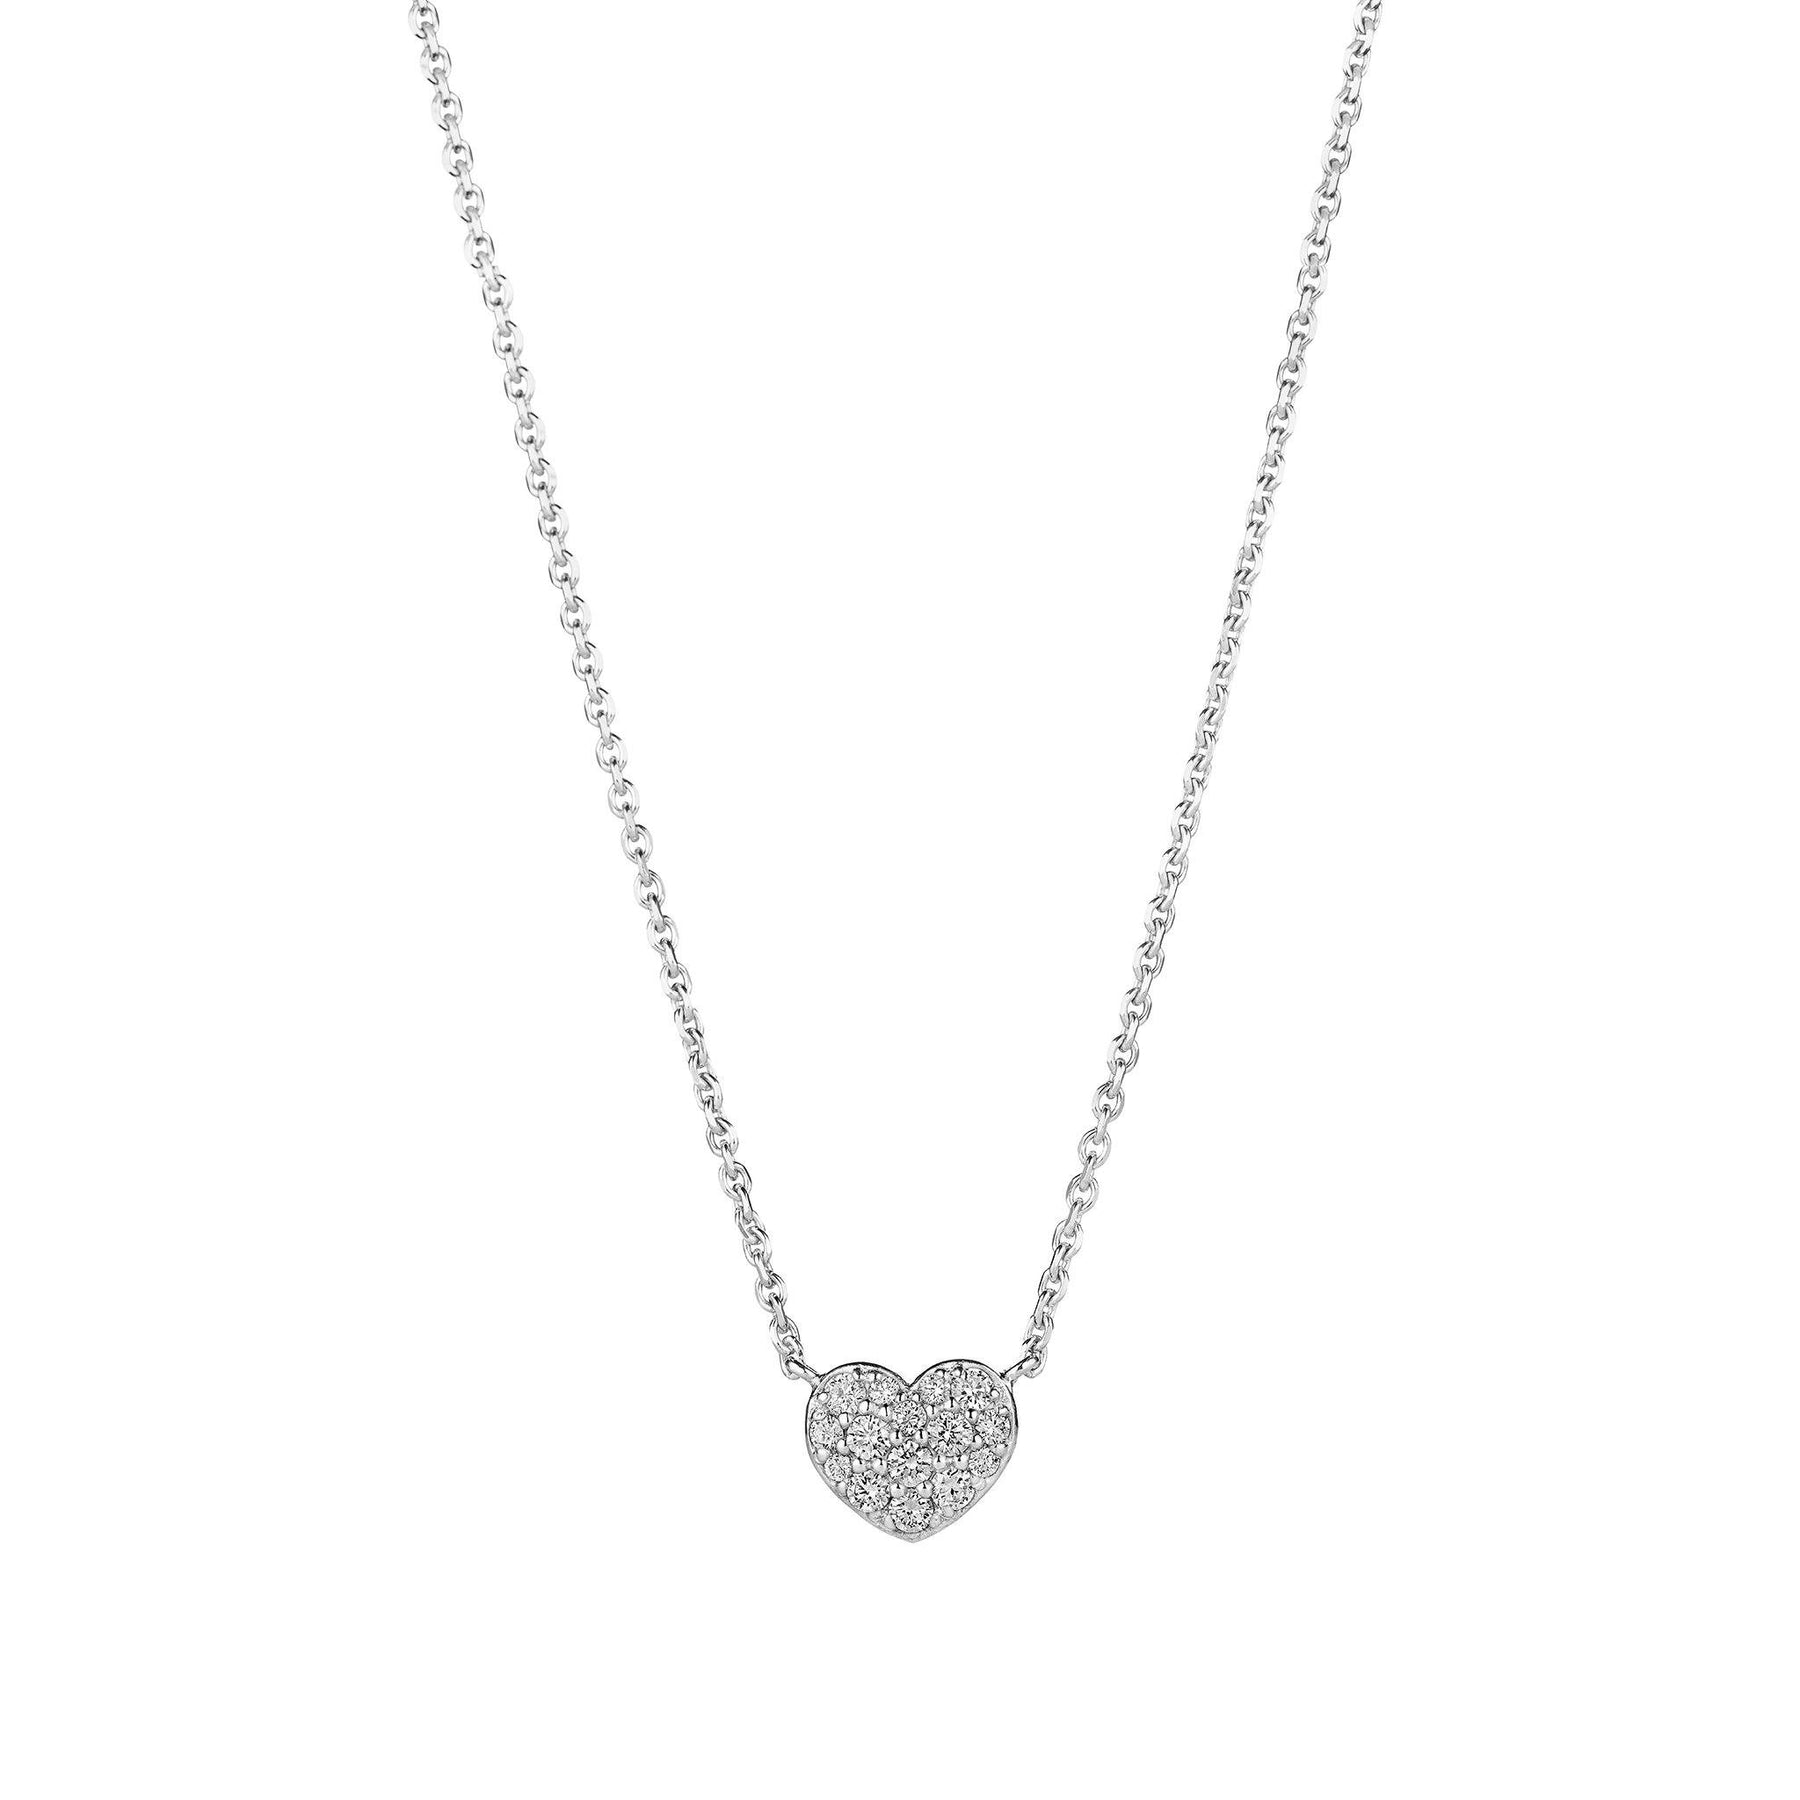 Mimi-So-Diamond-Heart-Necklace_18k White Gold